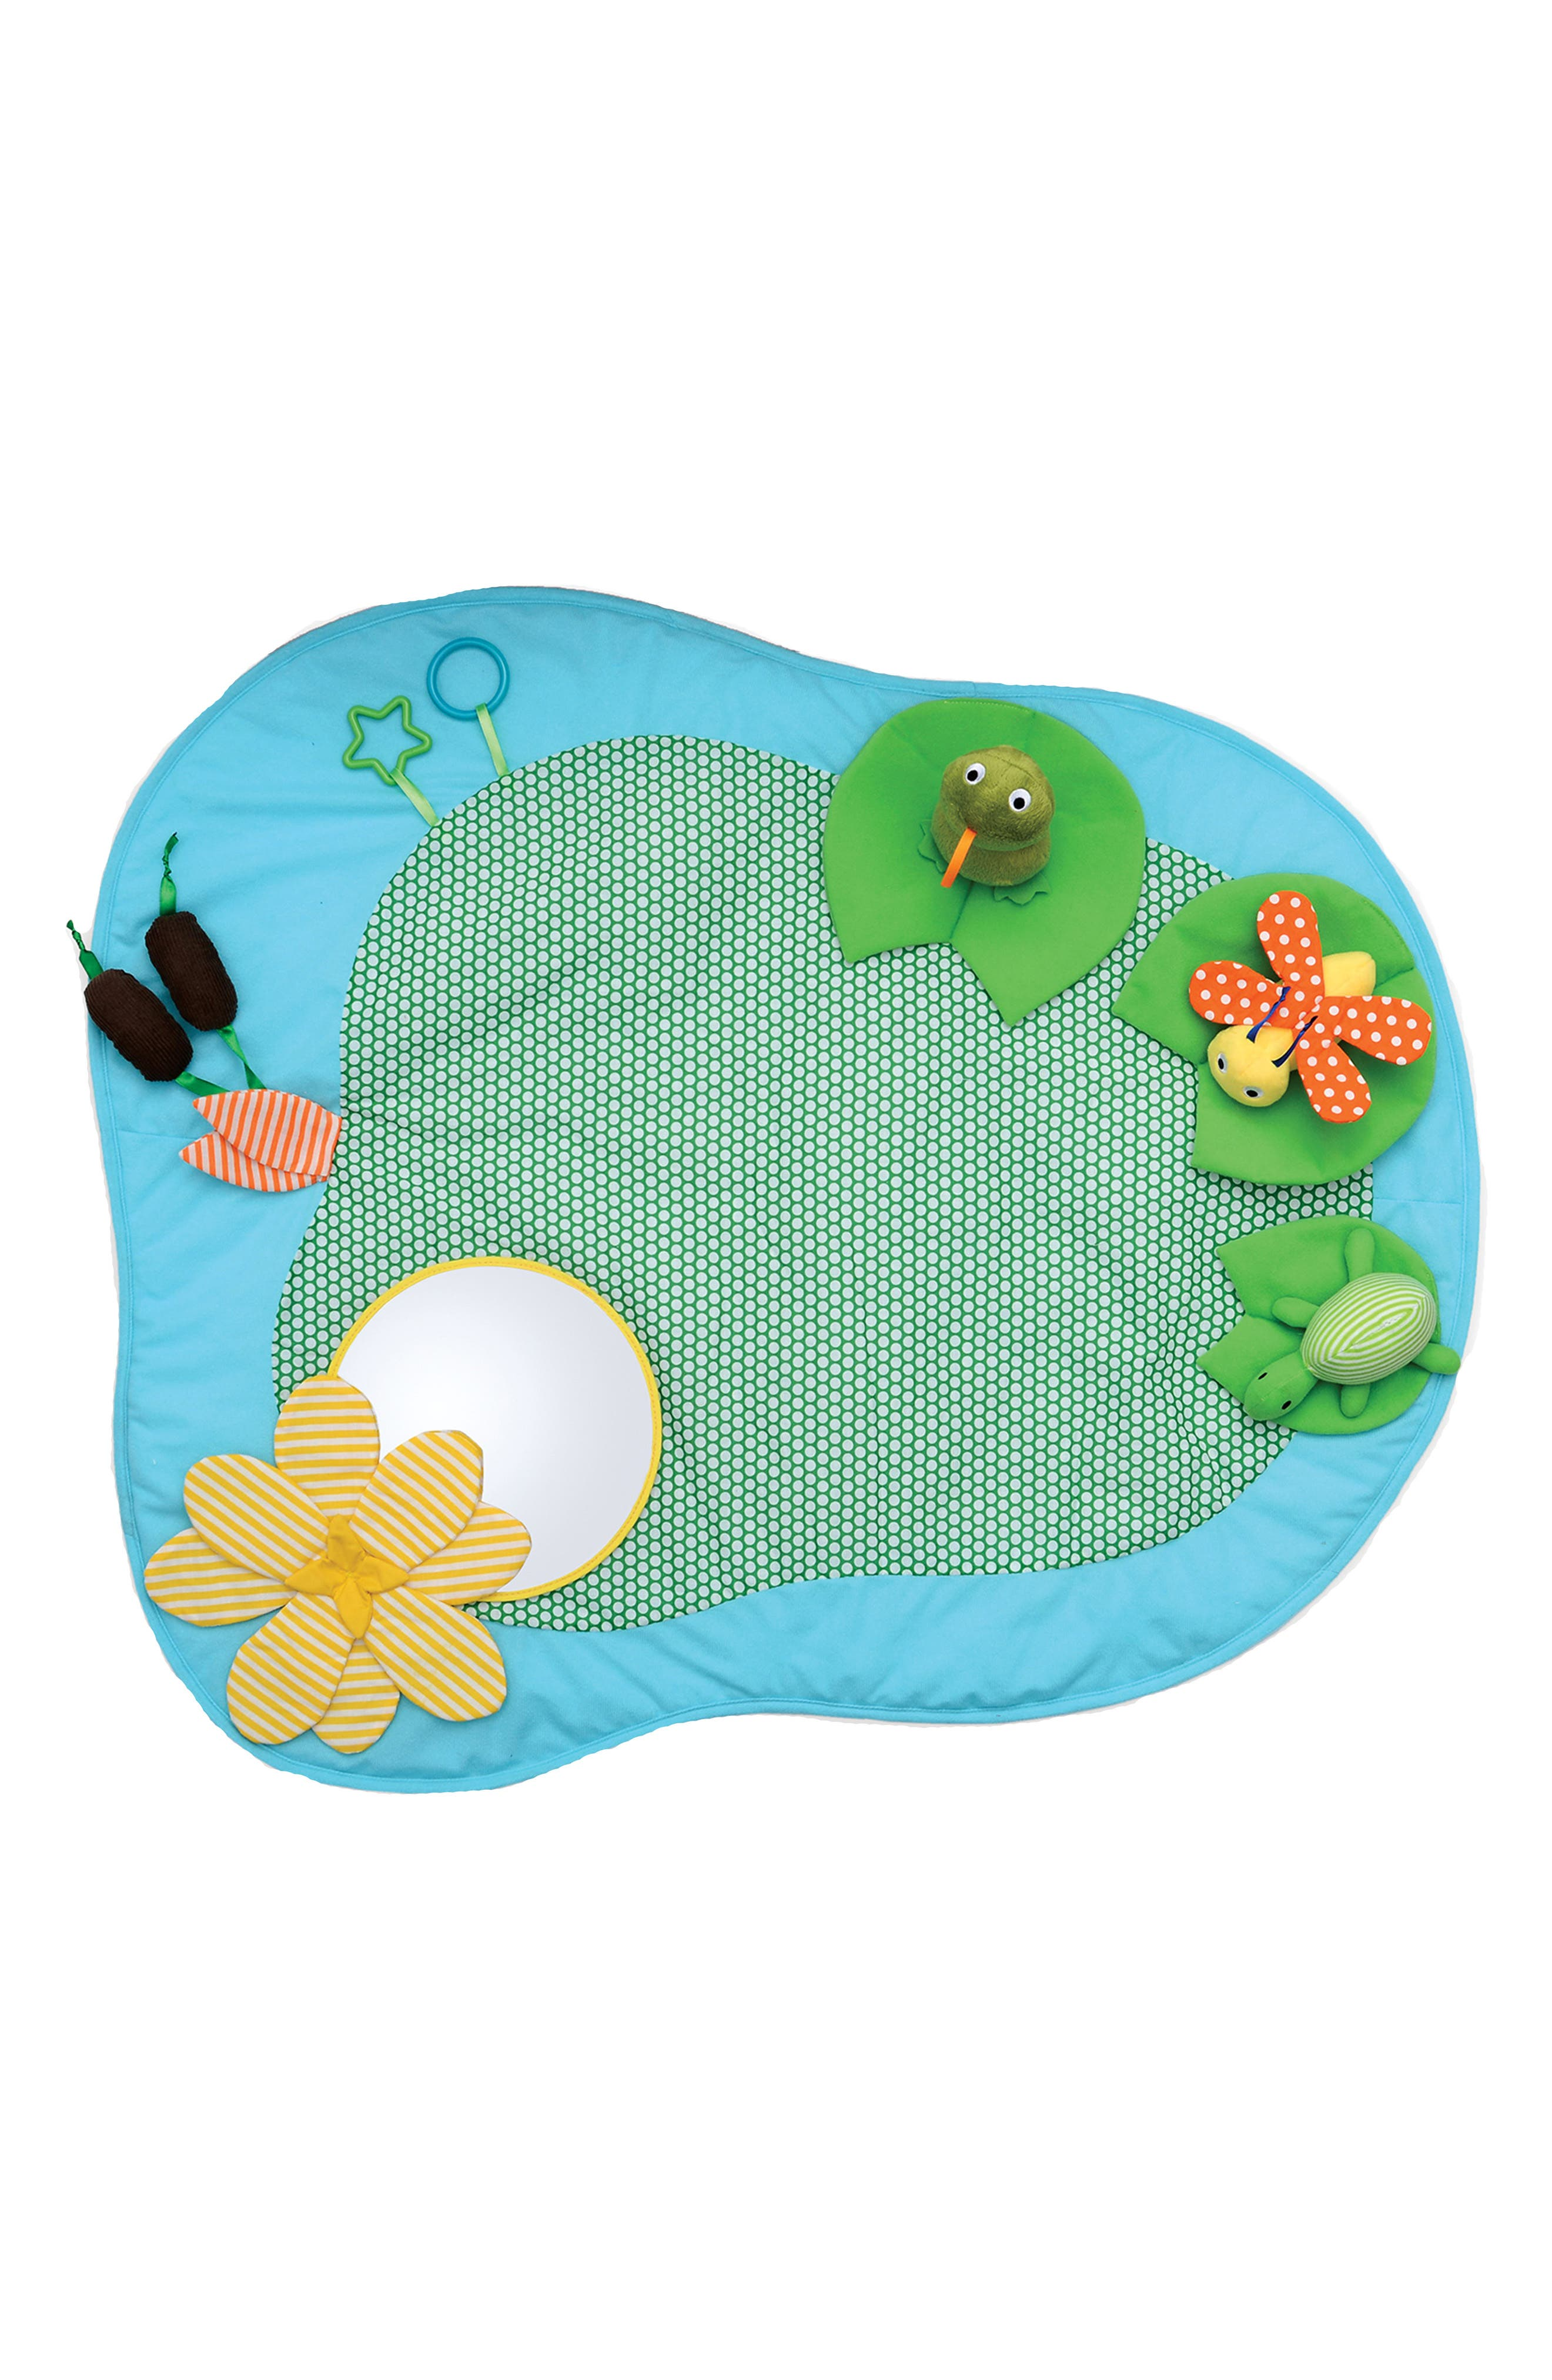 Playtime Pond Mat,                         Main,                         color, 400